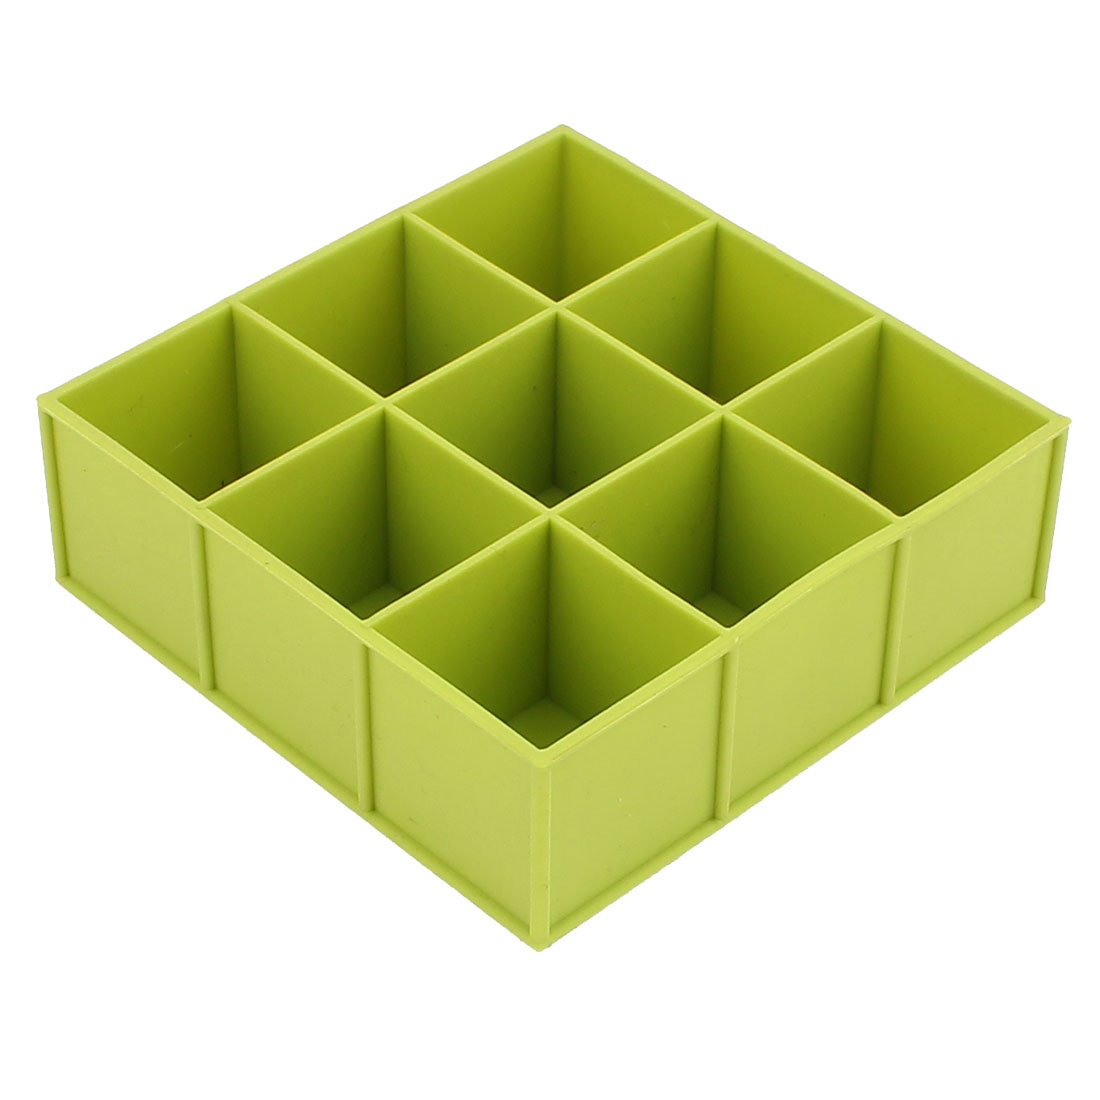 Silicone 9 Square Shaped Cavities Candy Muffin Cake Baking Mold Green